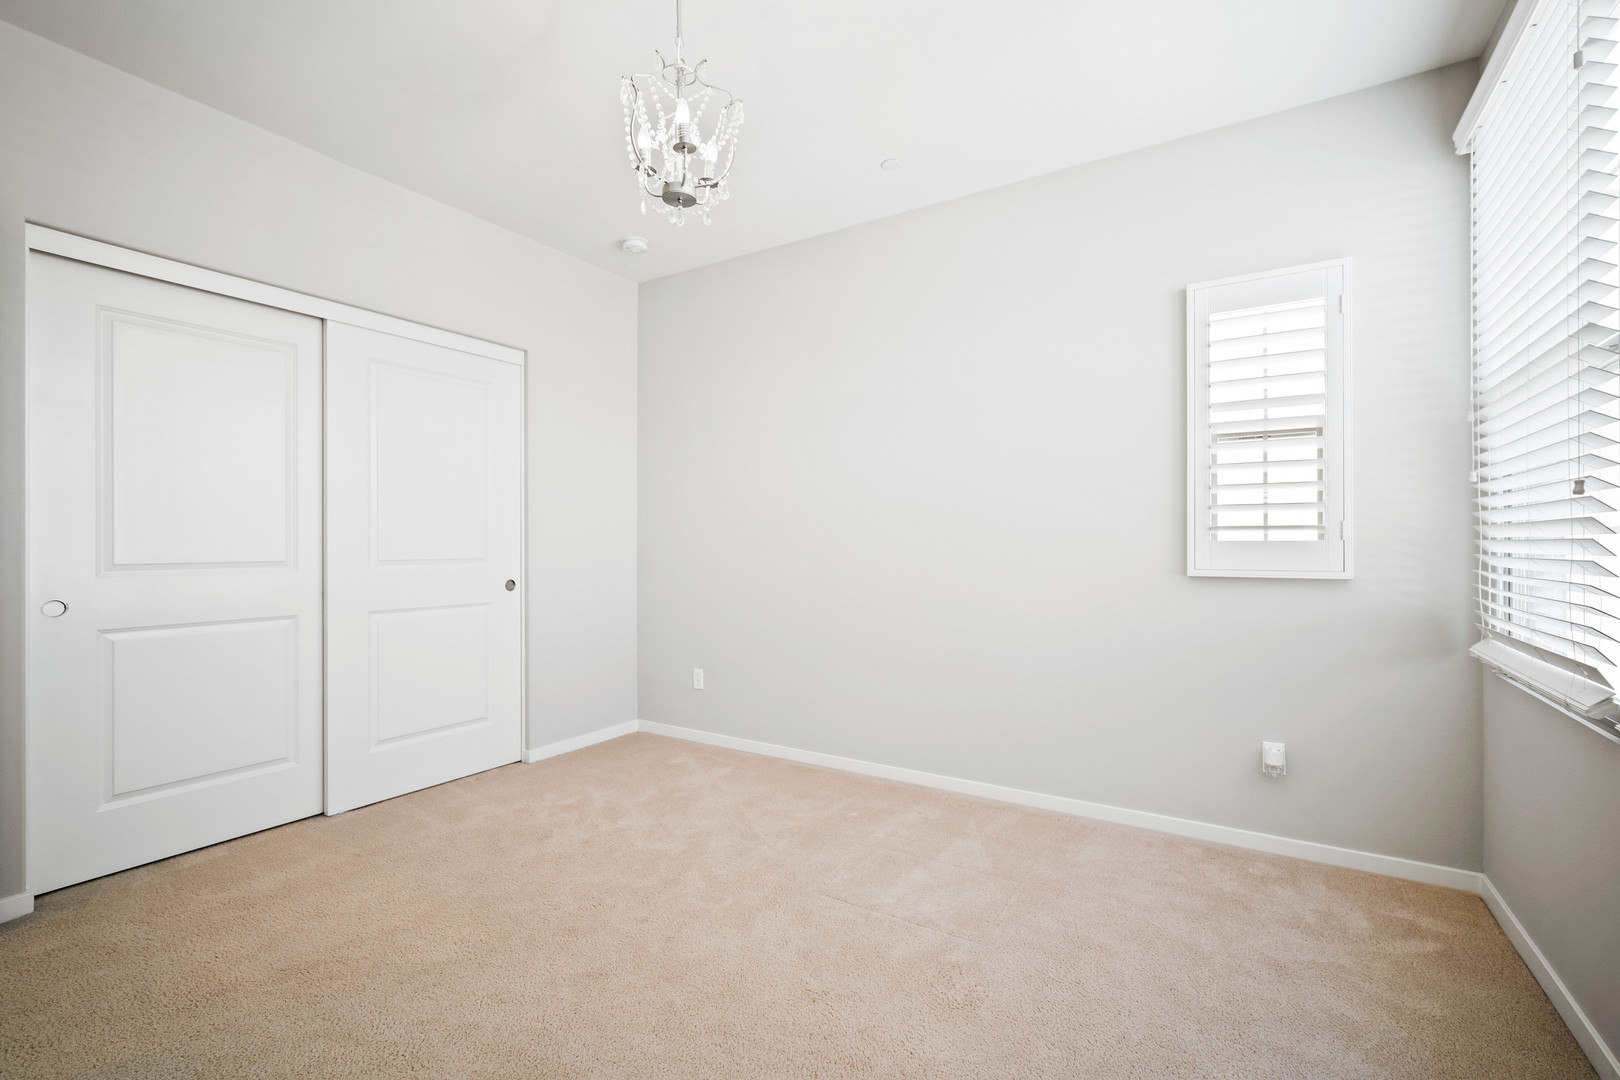 53 Bay Laurel - Irvine Bedroom 2 (3).jpg